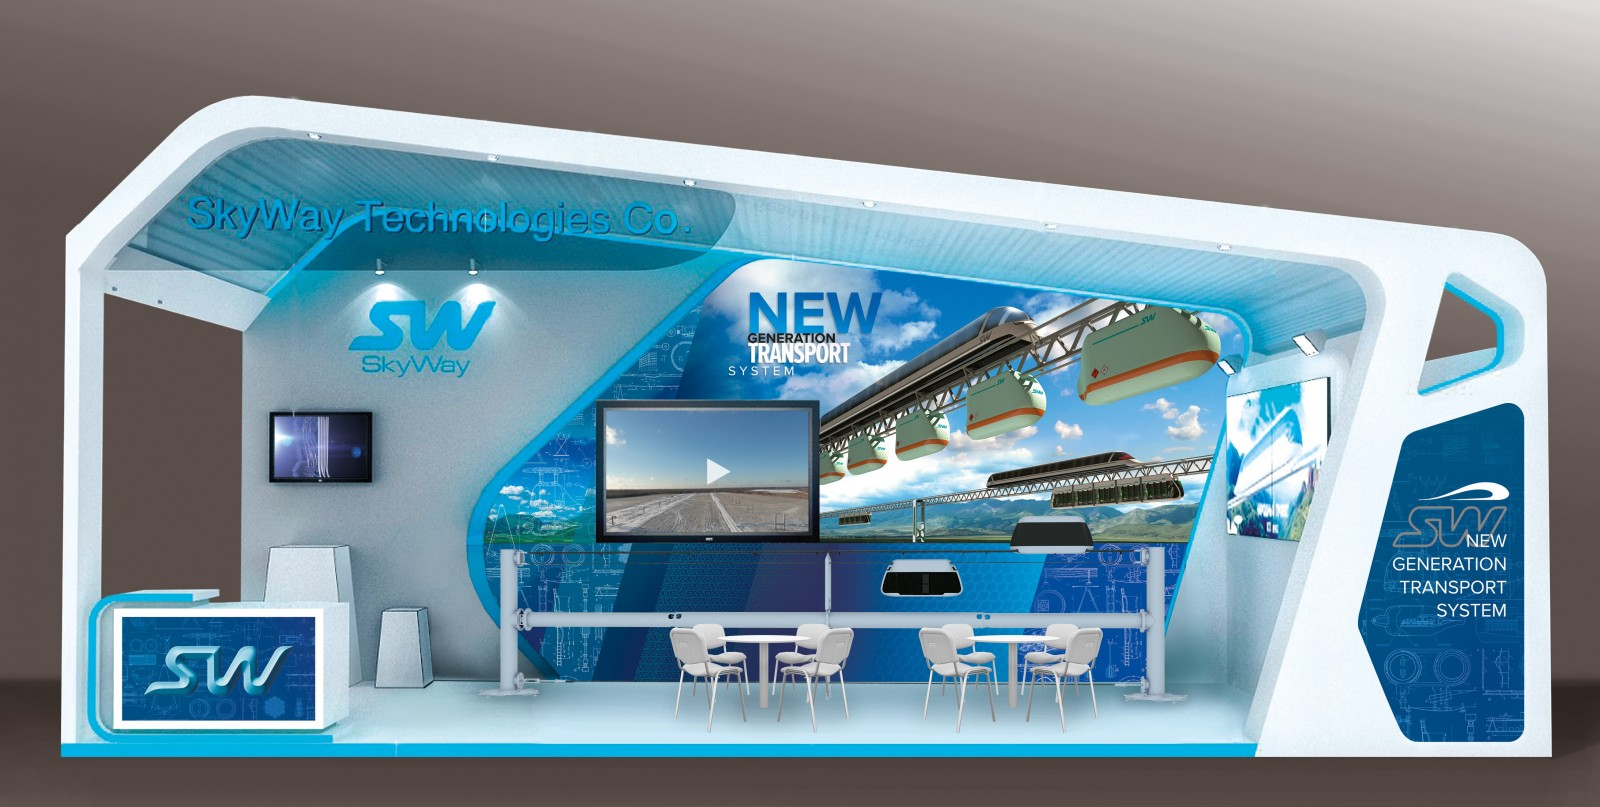 SkyWay technology will be displayed at RailwayTech 2017 in Indonesia